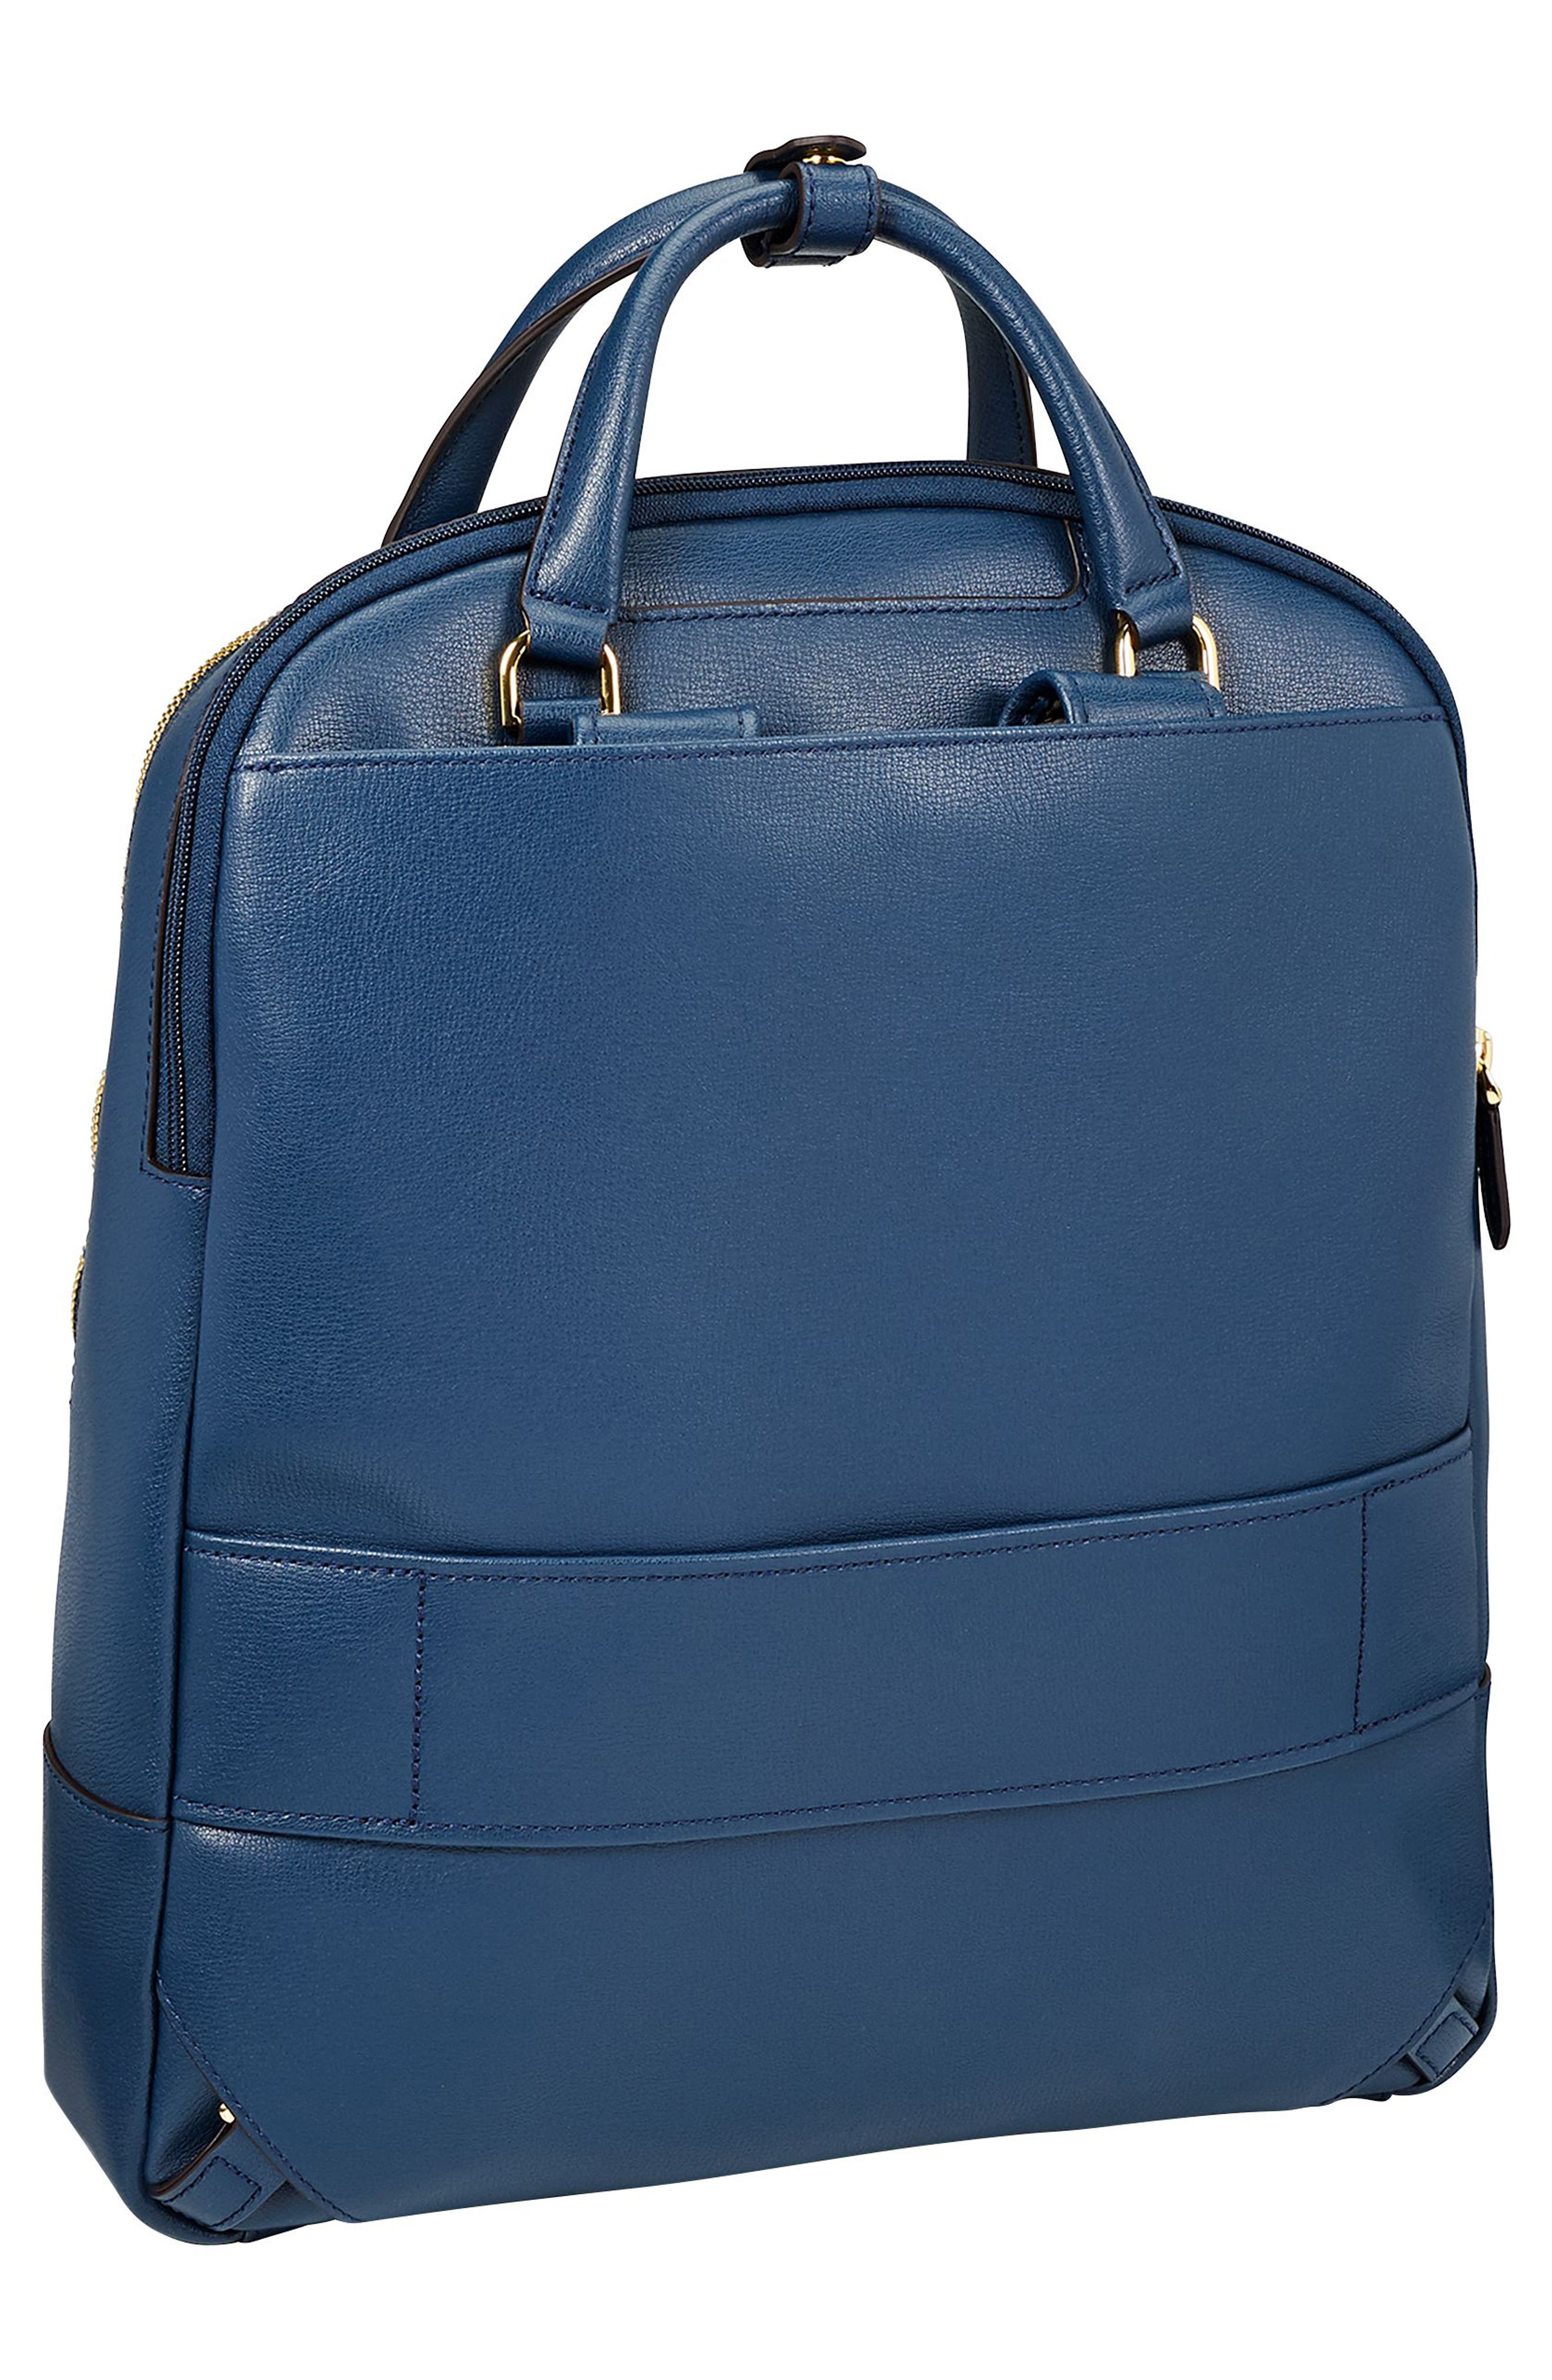 Stanton Orion Leather Backpack,                             Alternate thumbnail 9, color,